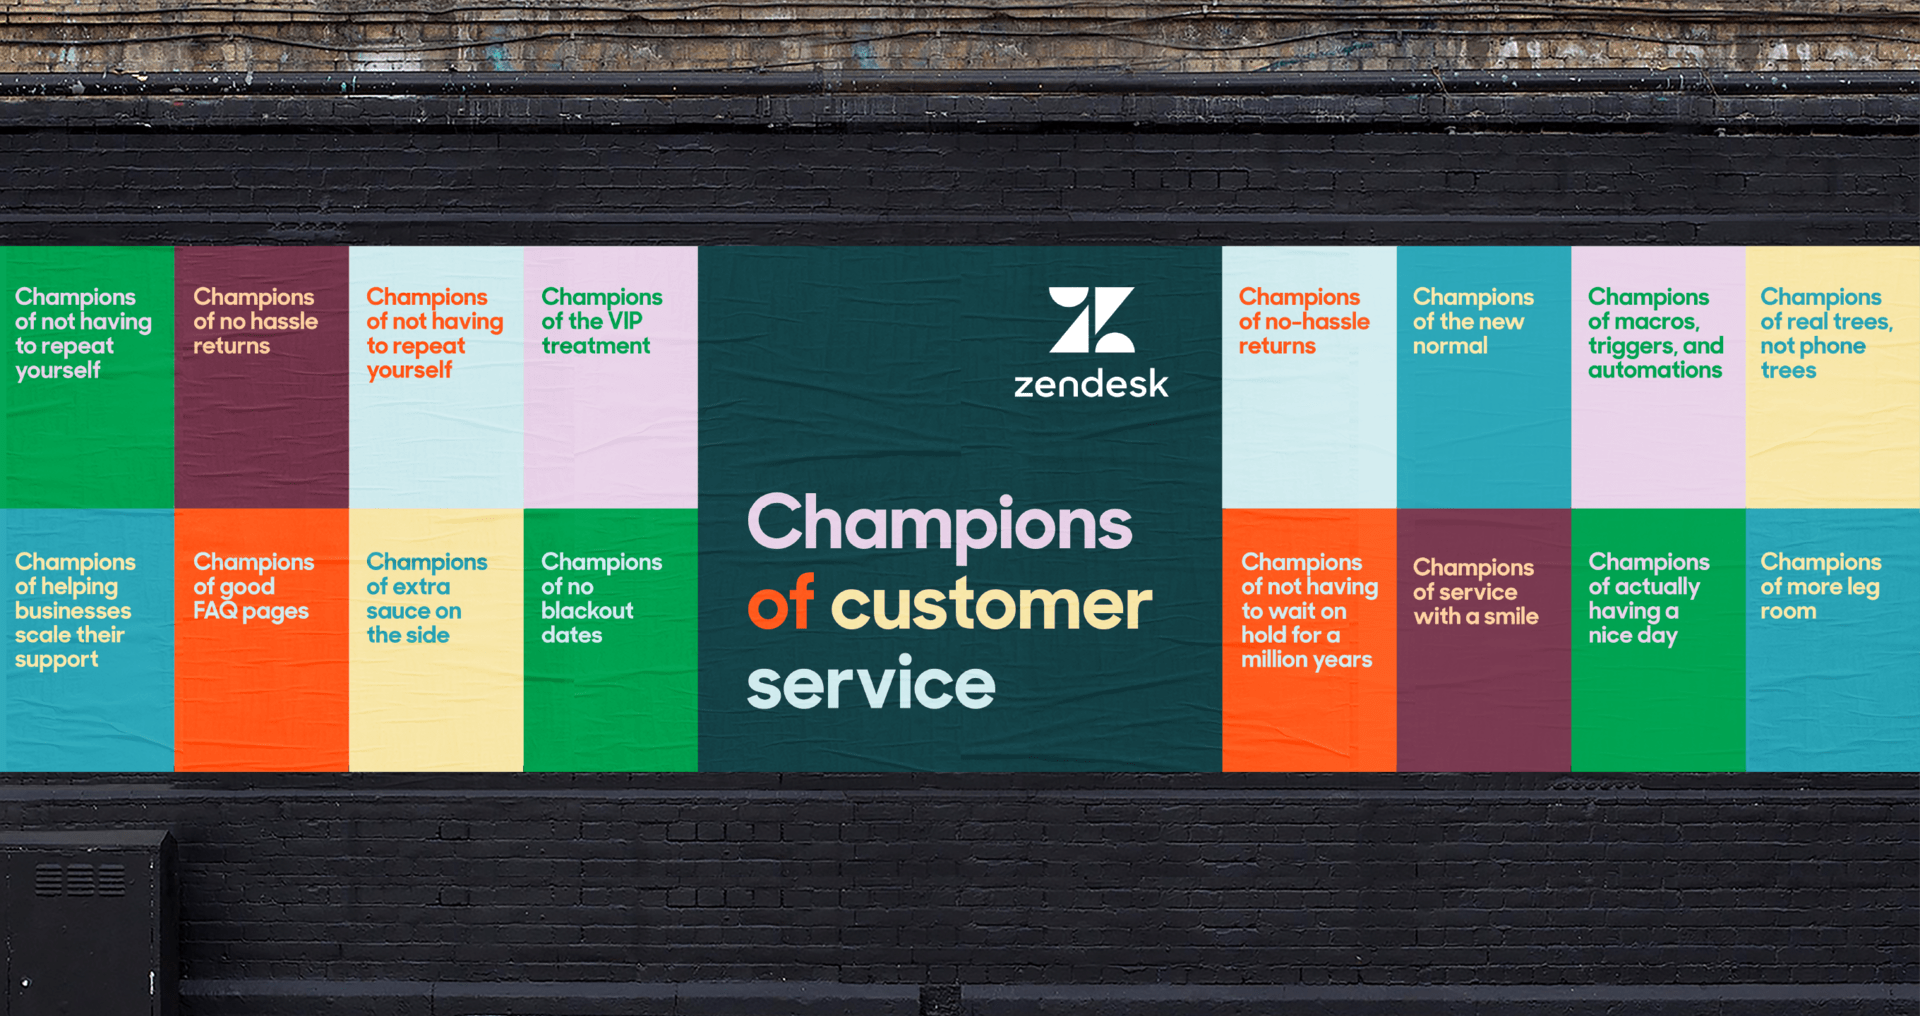 champions of customer service